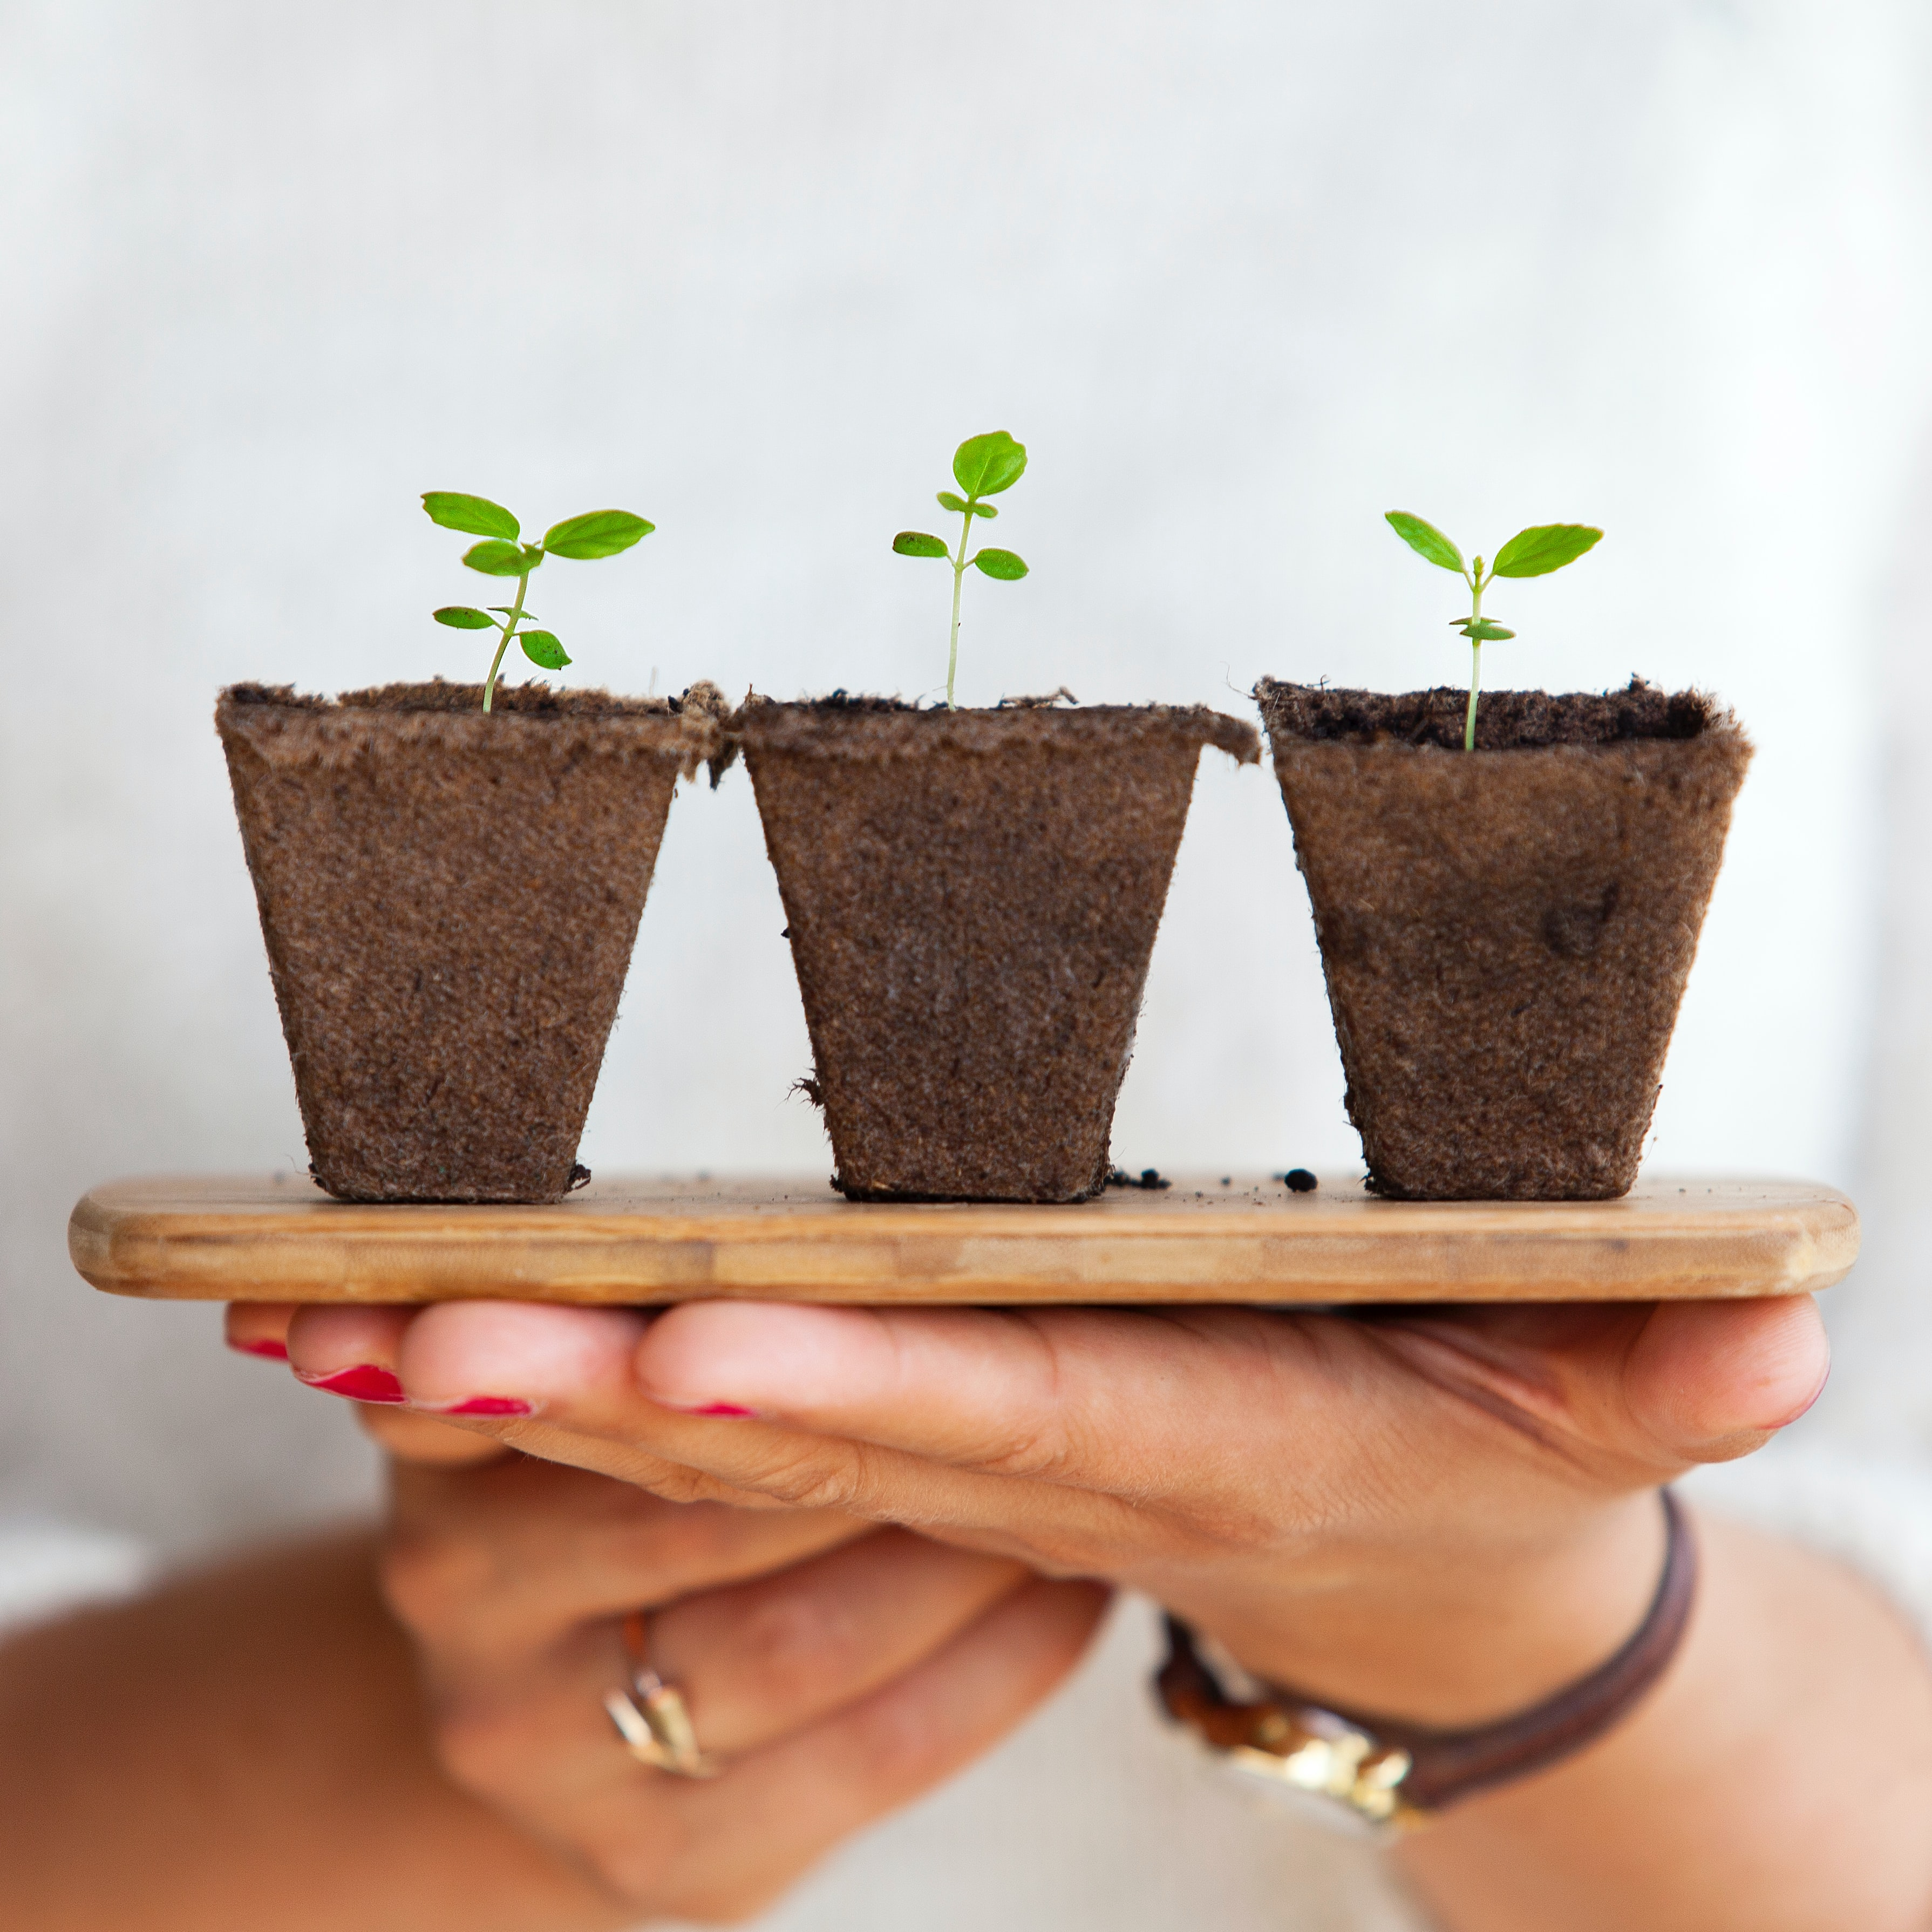 three small plants growing from soil held in someone's hands